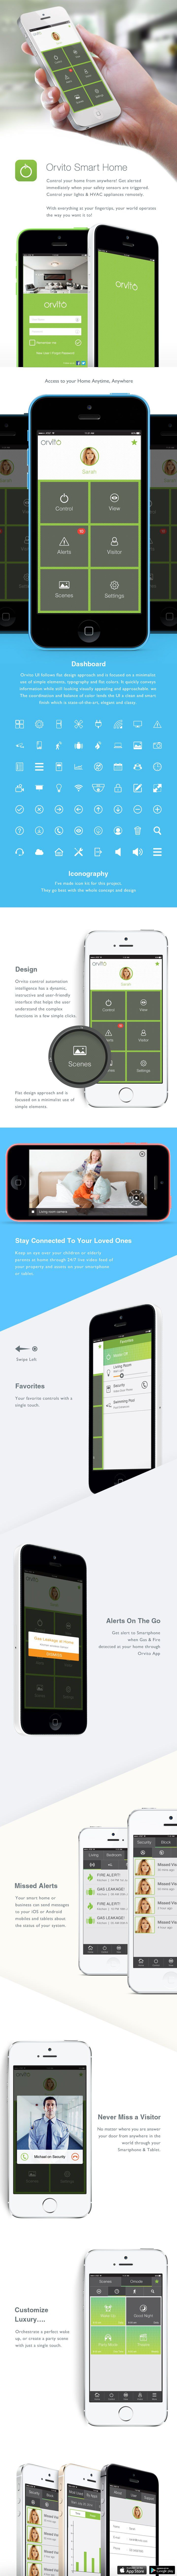 Orvito Smart Home Automation UI